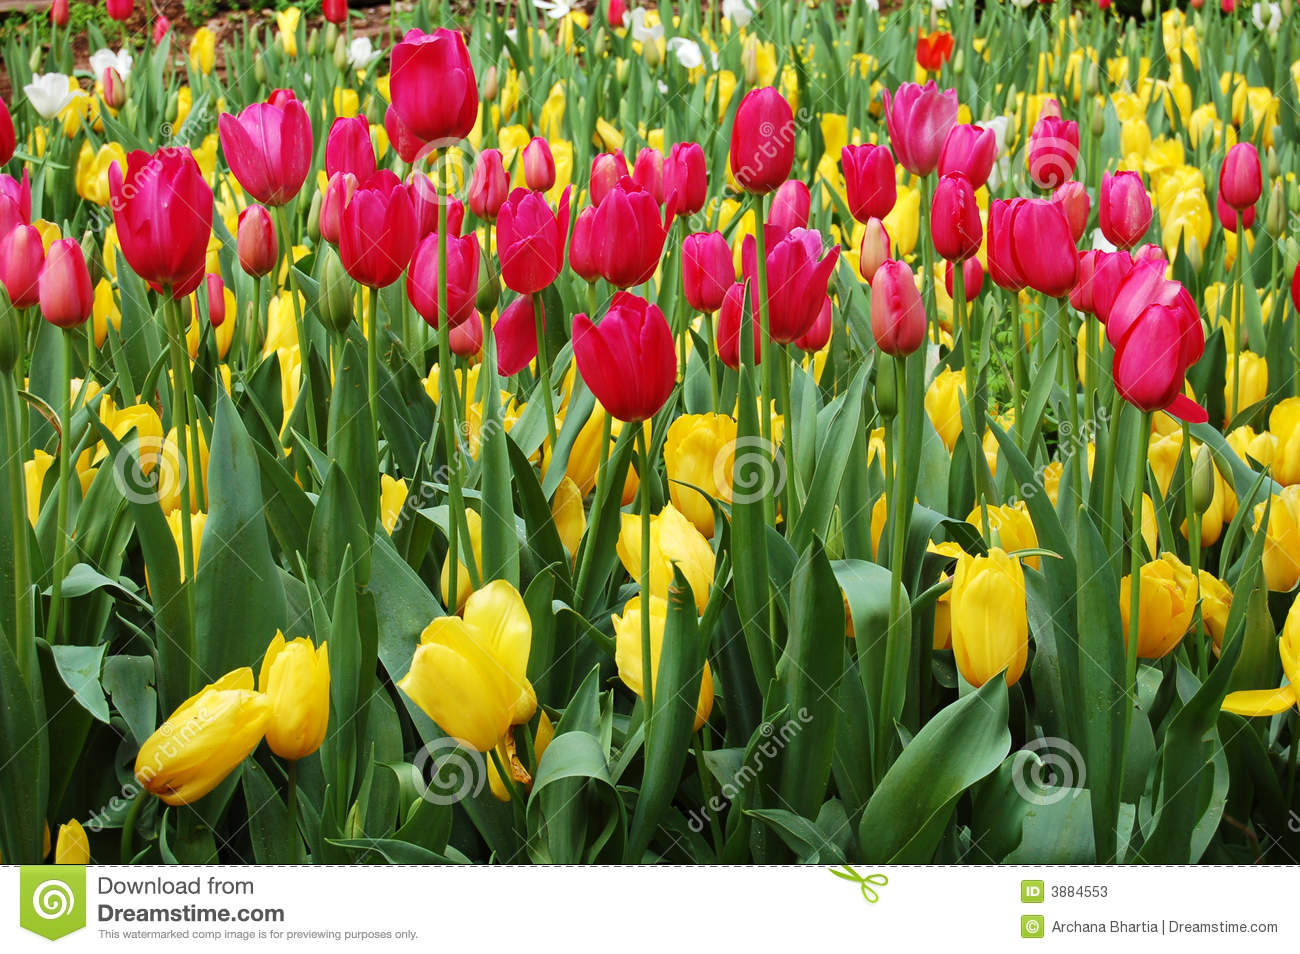 Colorful tulips in a garden at springtime.